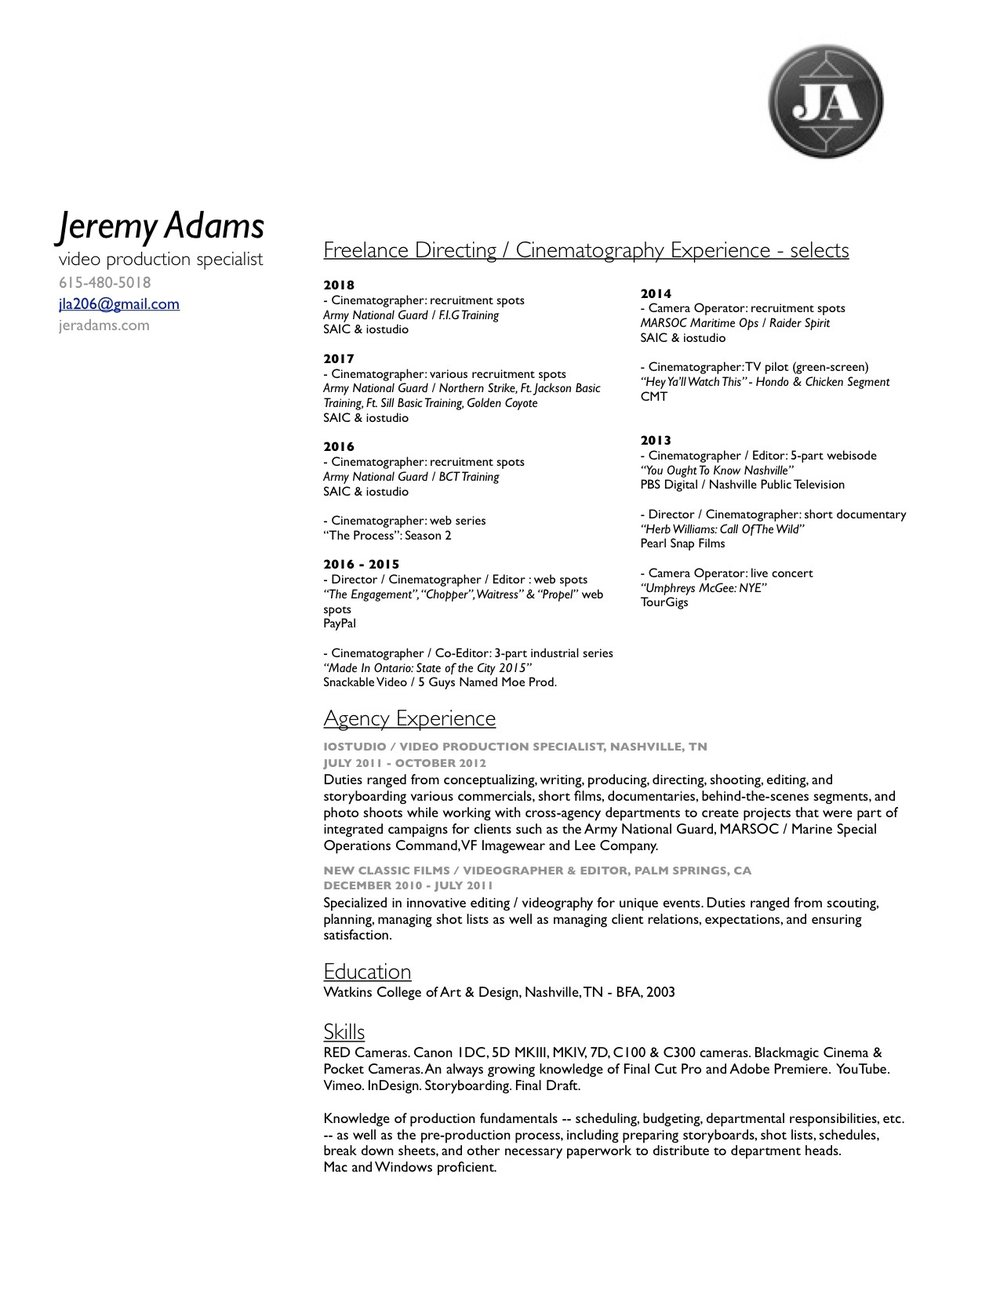 J Adams Video Resume 2018 (1).jpg